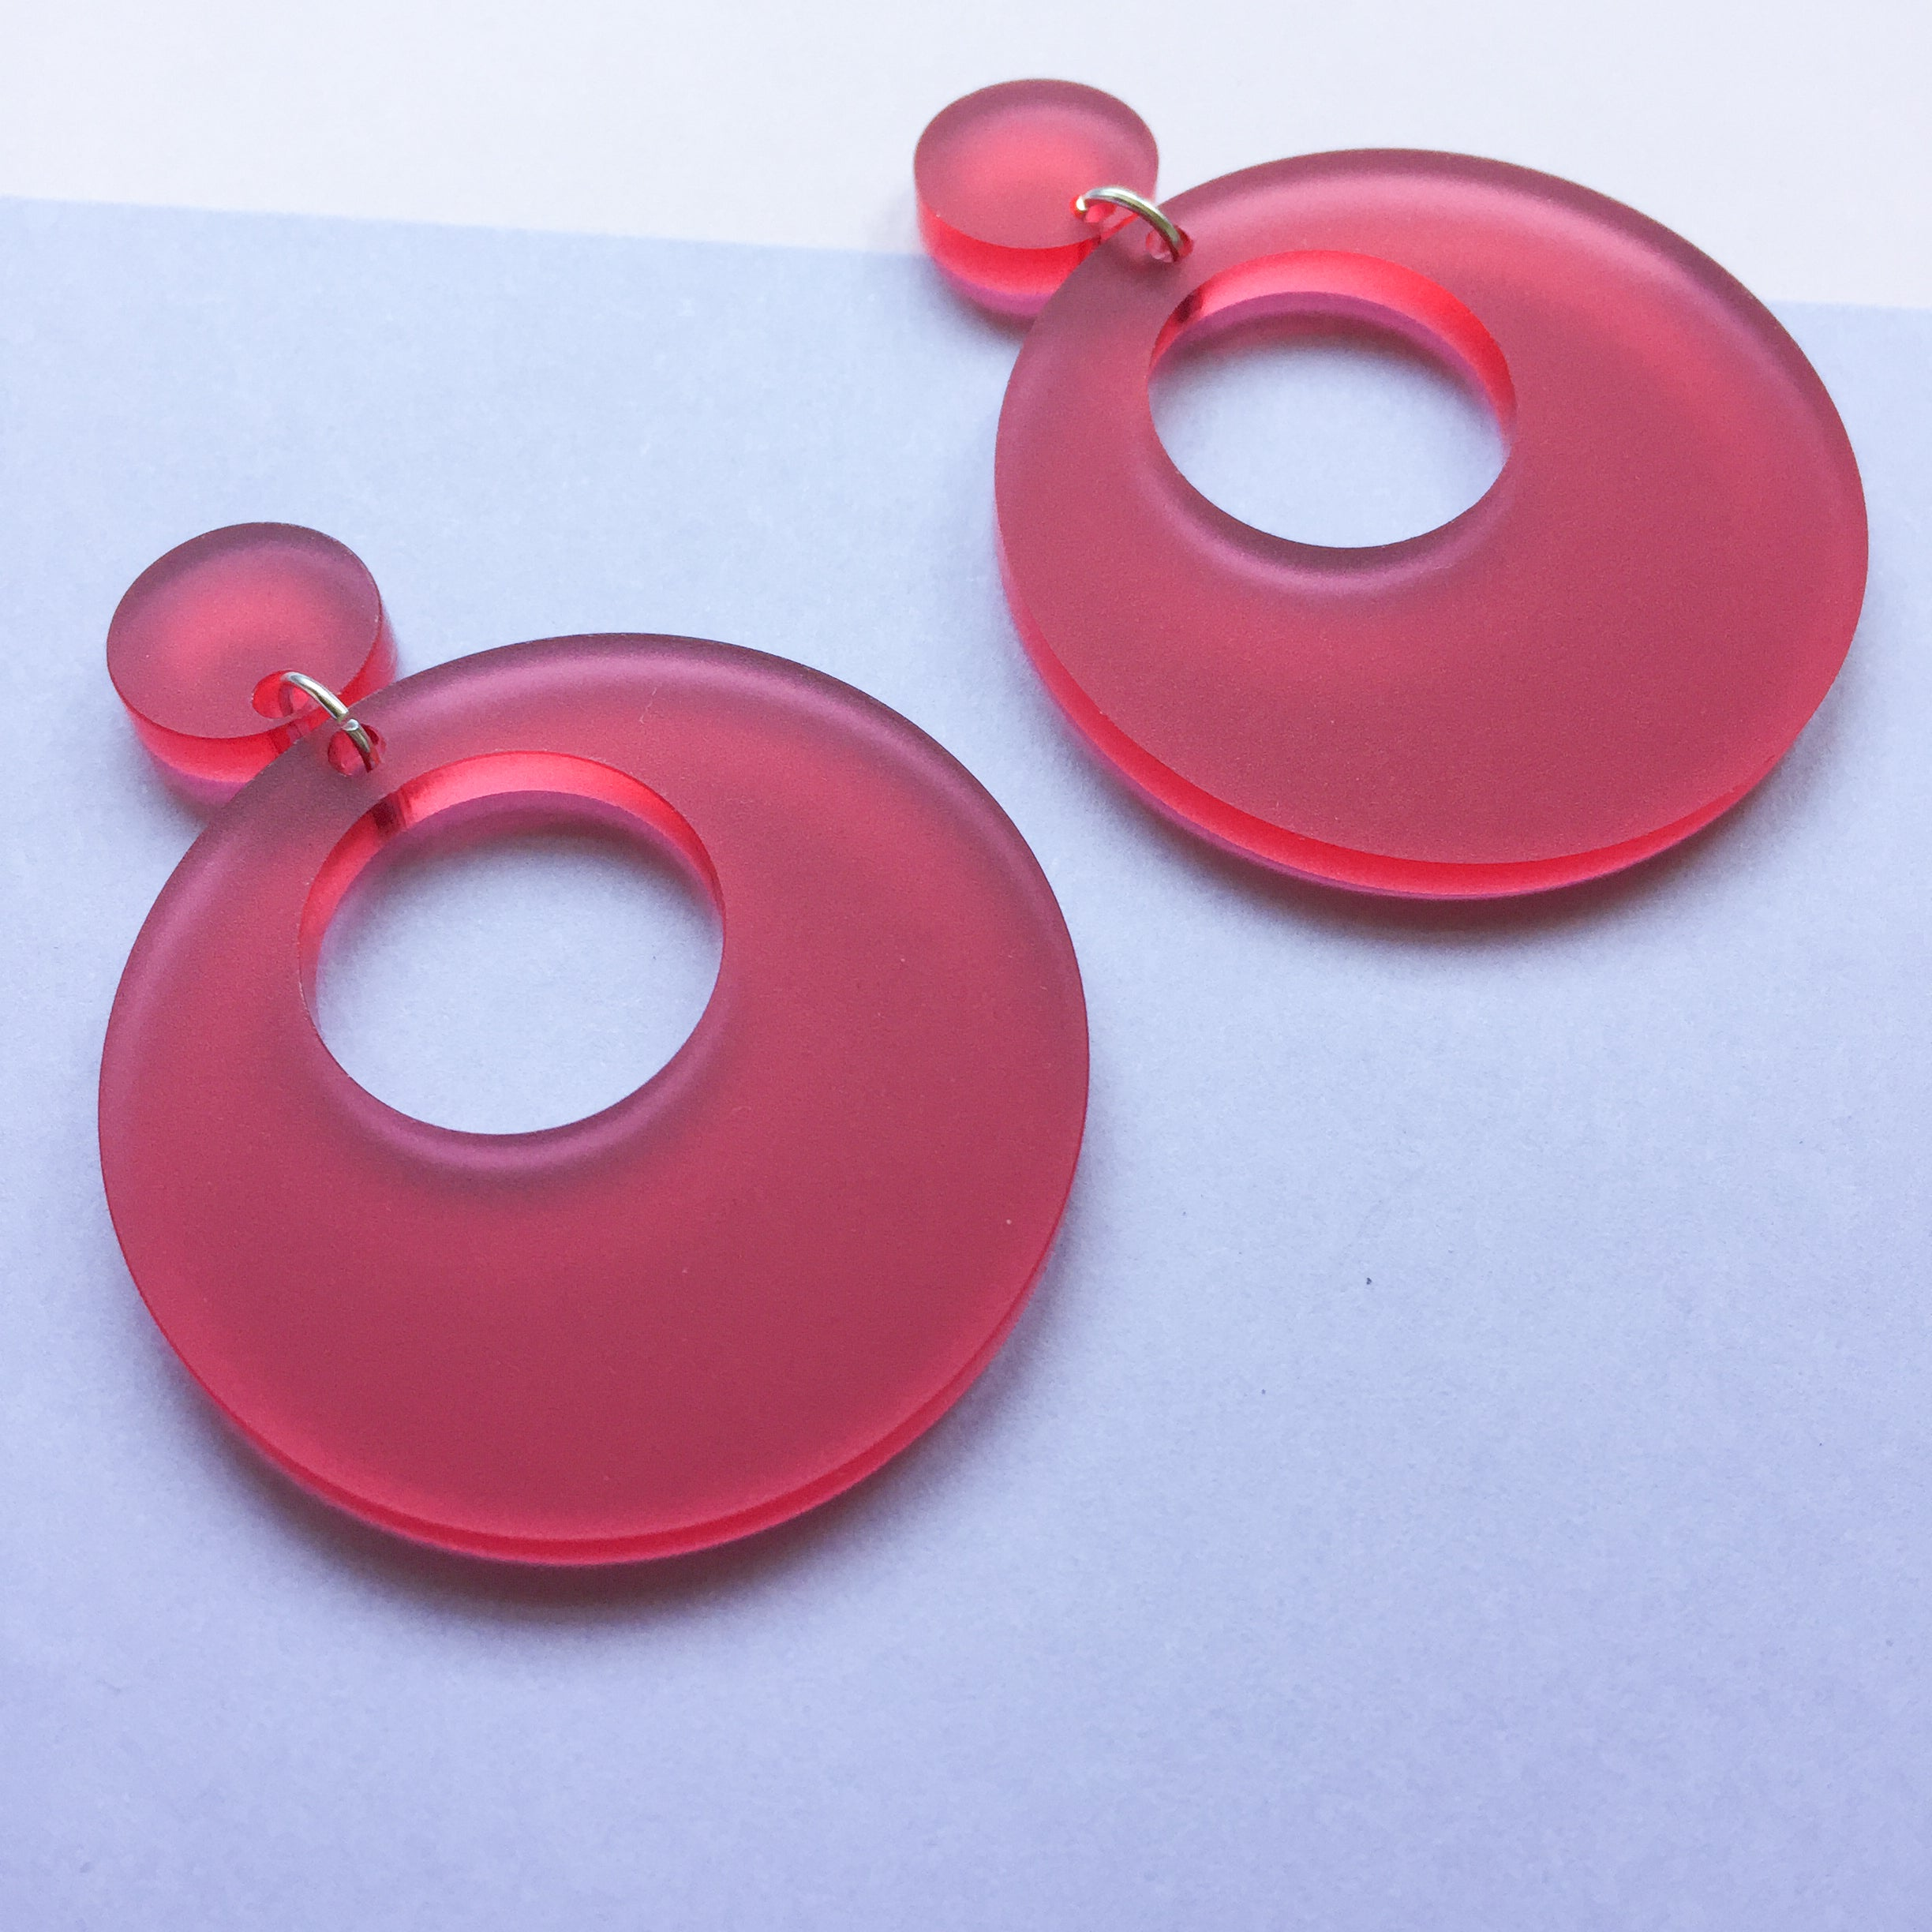 Mod Inspired Stud Hoop Earrings - Frosted Raspberry